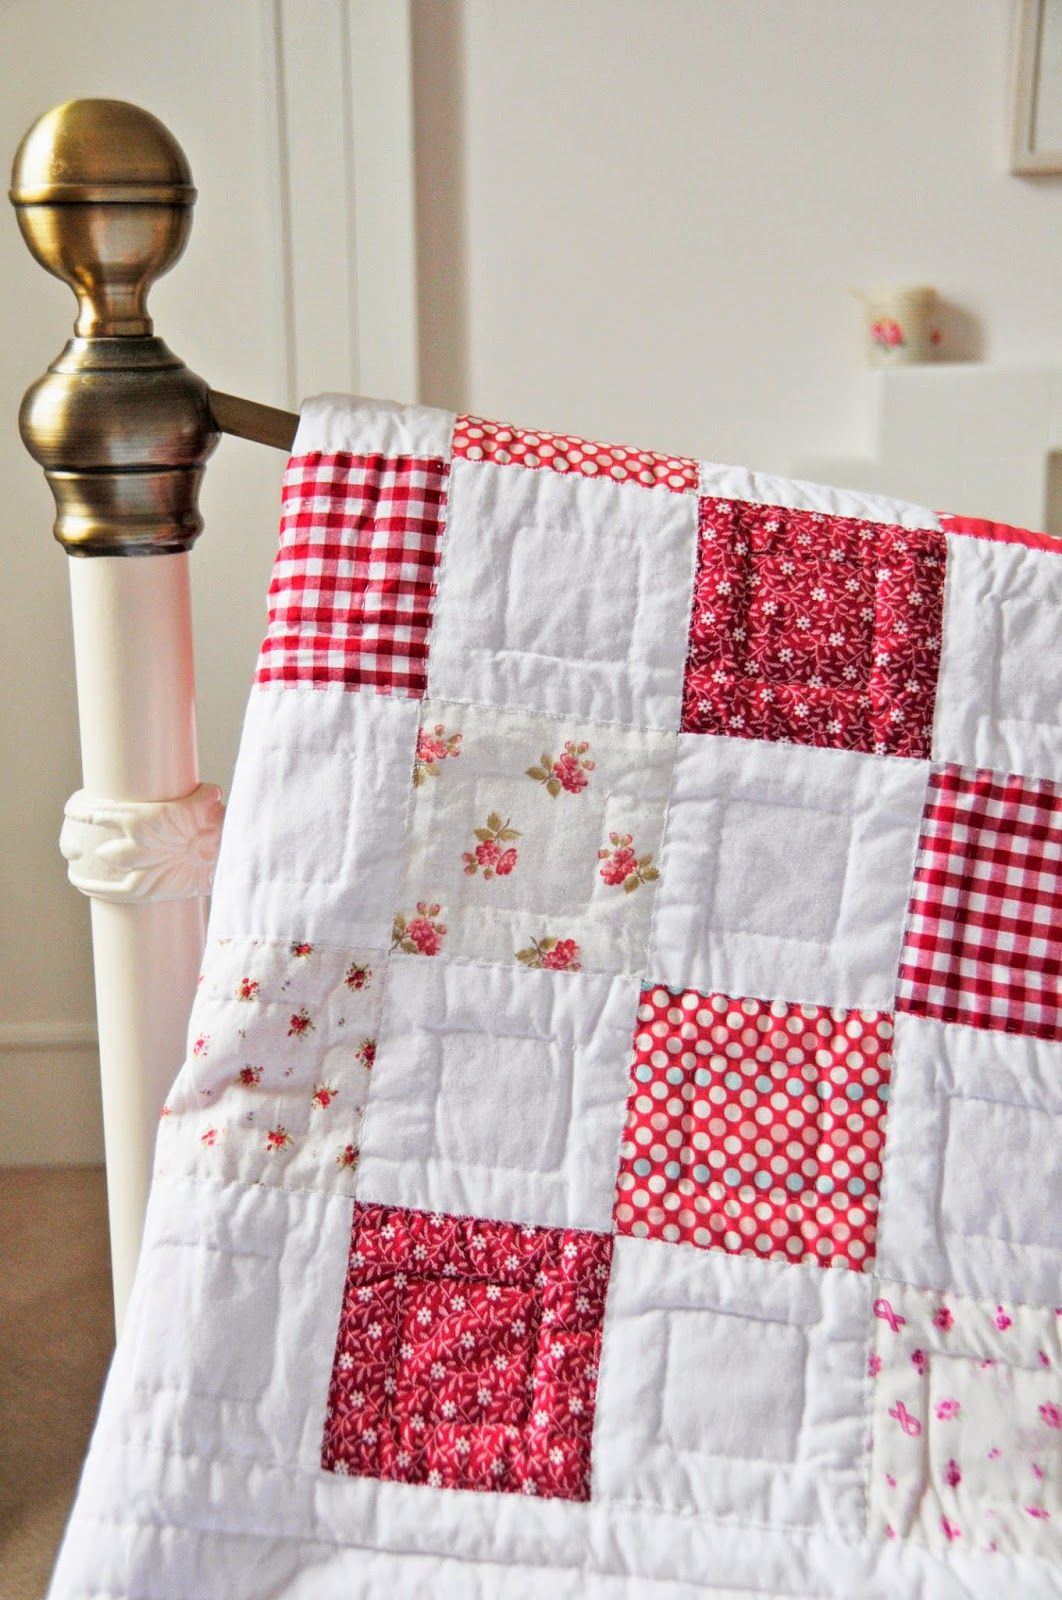 cottage style interior Sweet Little Quilt with simple yet lovely ... : pinterest quilts to make - Adamdwight.com